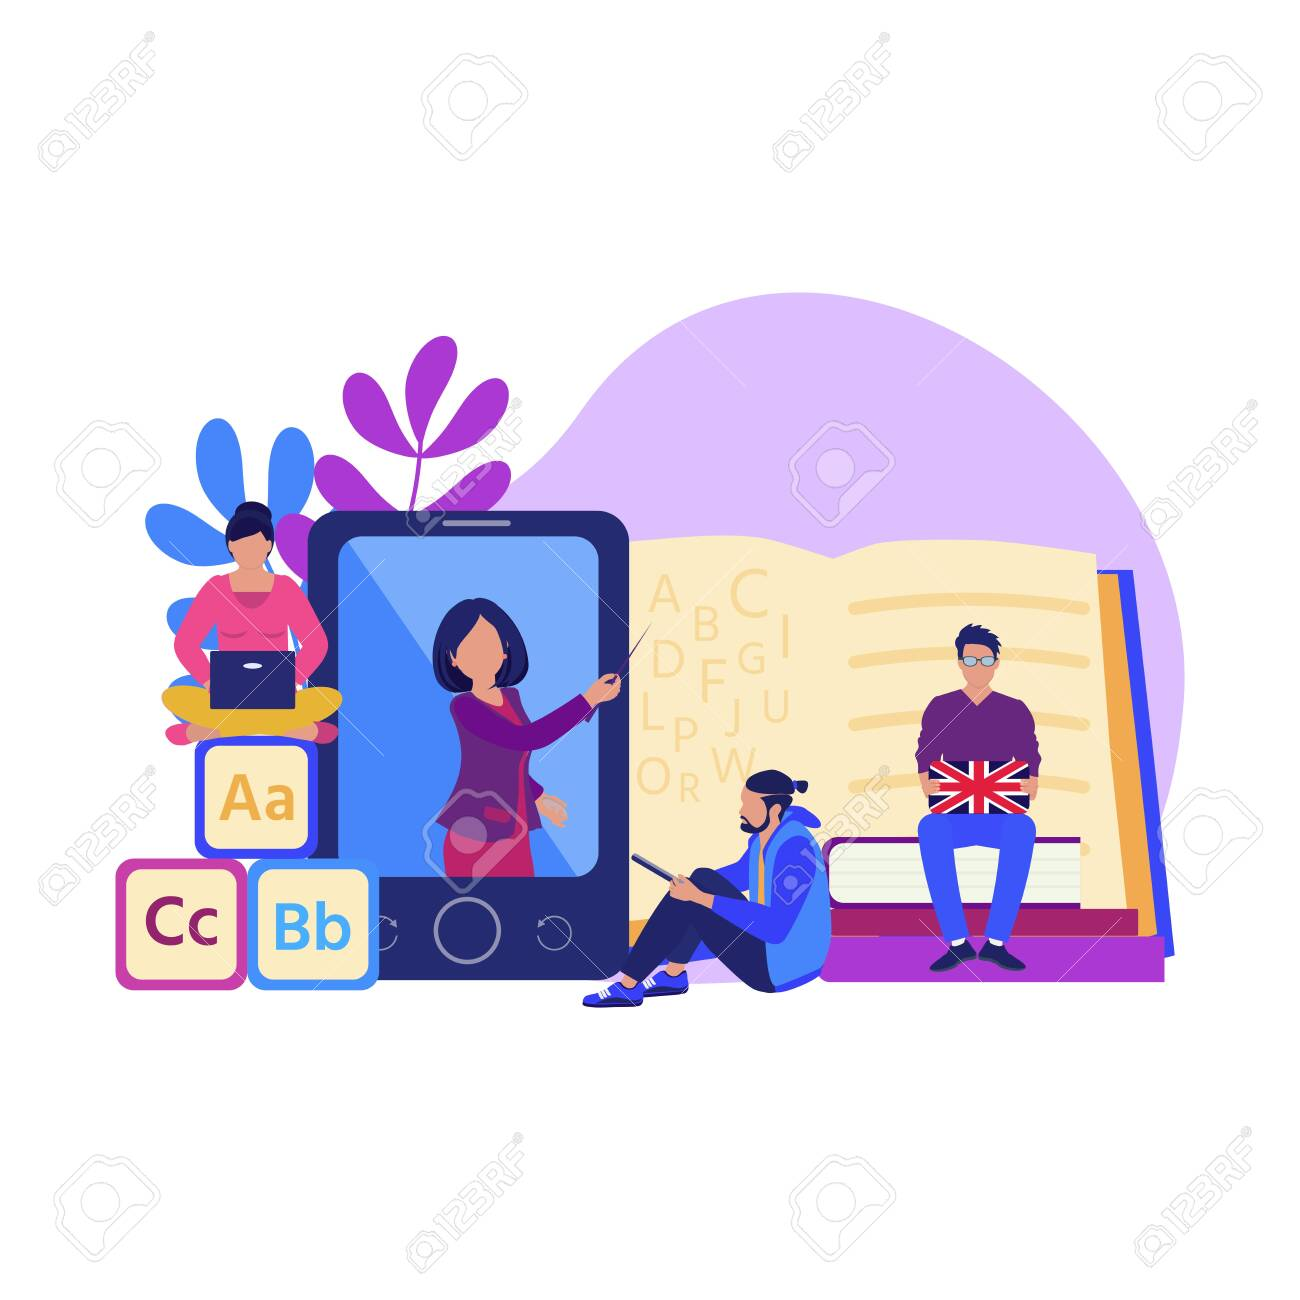 Online Learning Training And Teaching Seminar Education Concept Royalty Free Cliparts Vectors And Stock Illustration Image 124863182